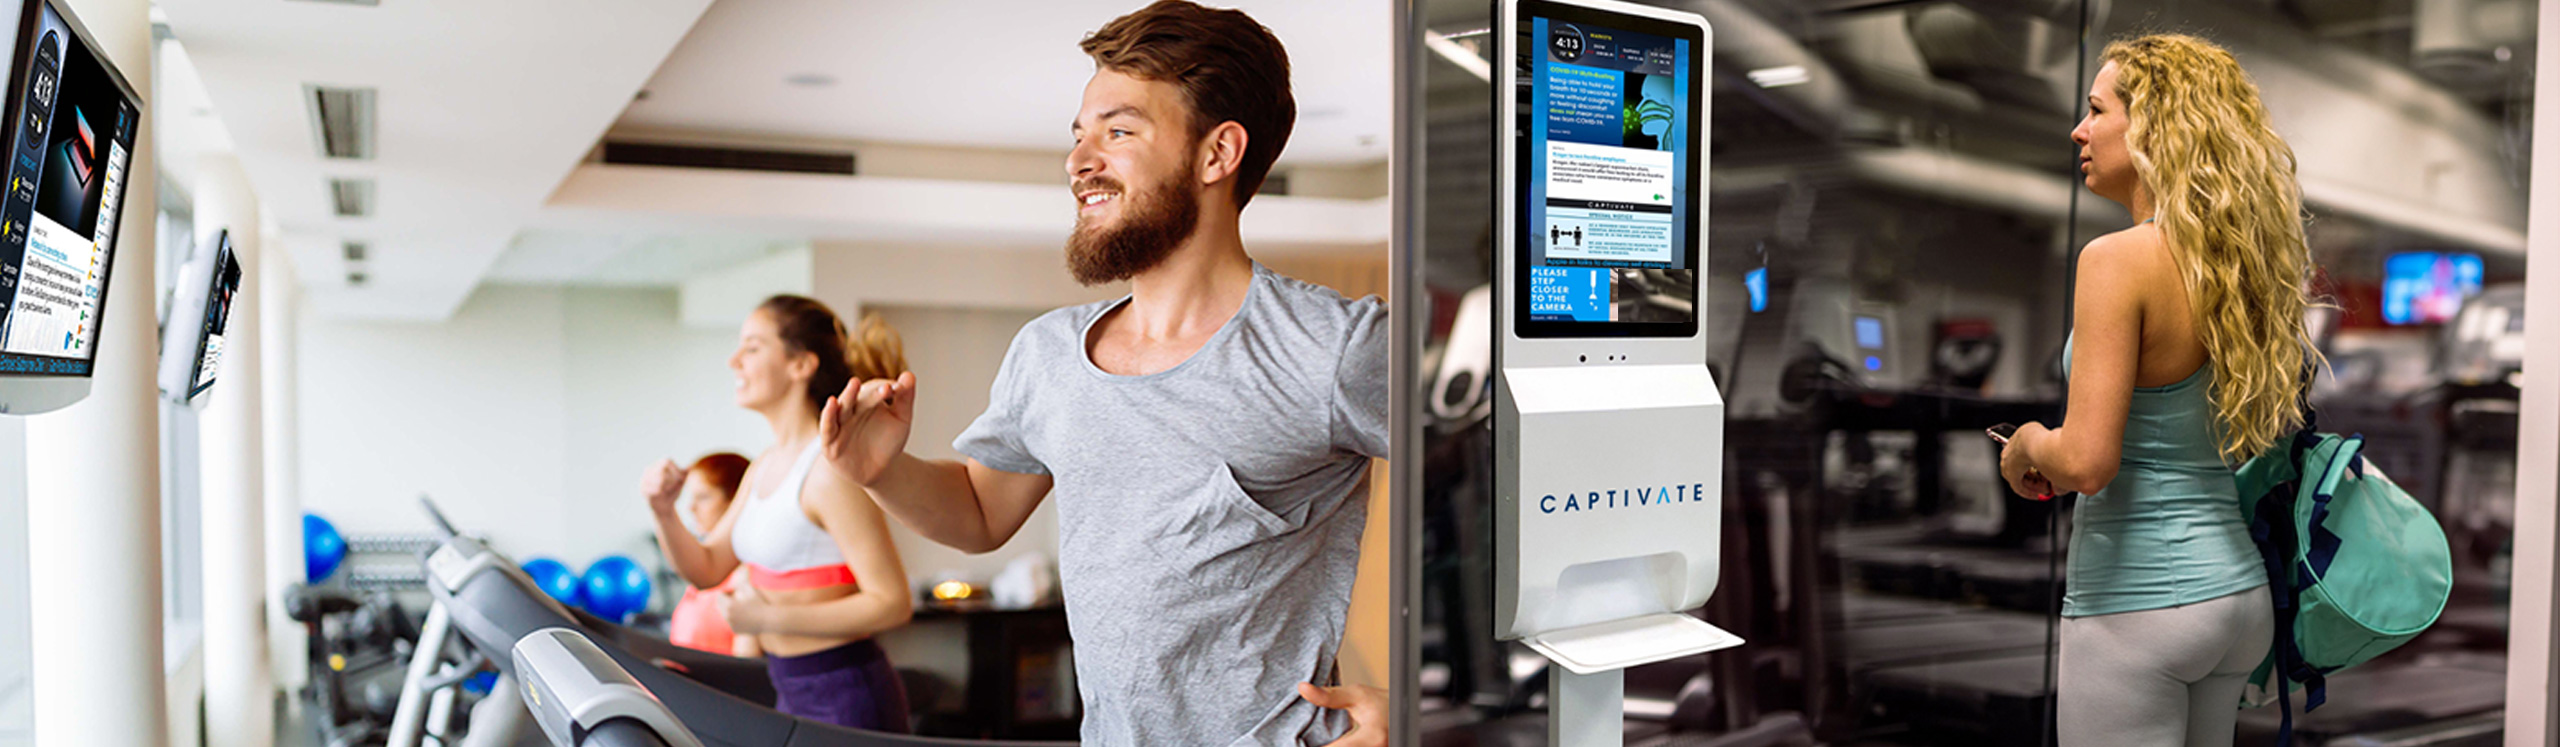 Captivate SCAN and Captivate Residential